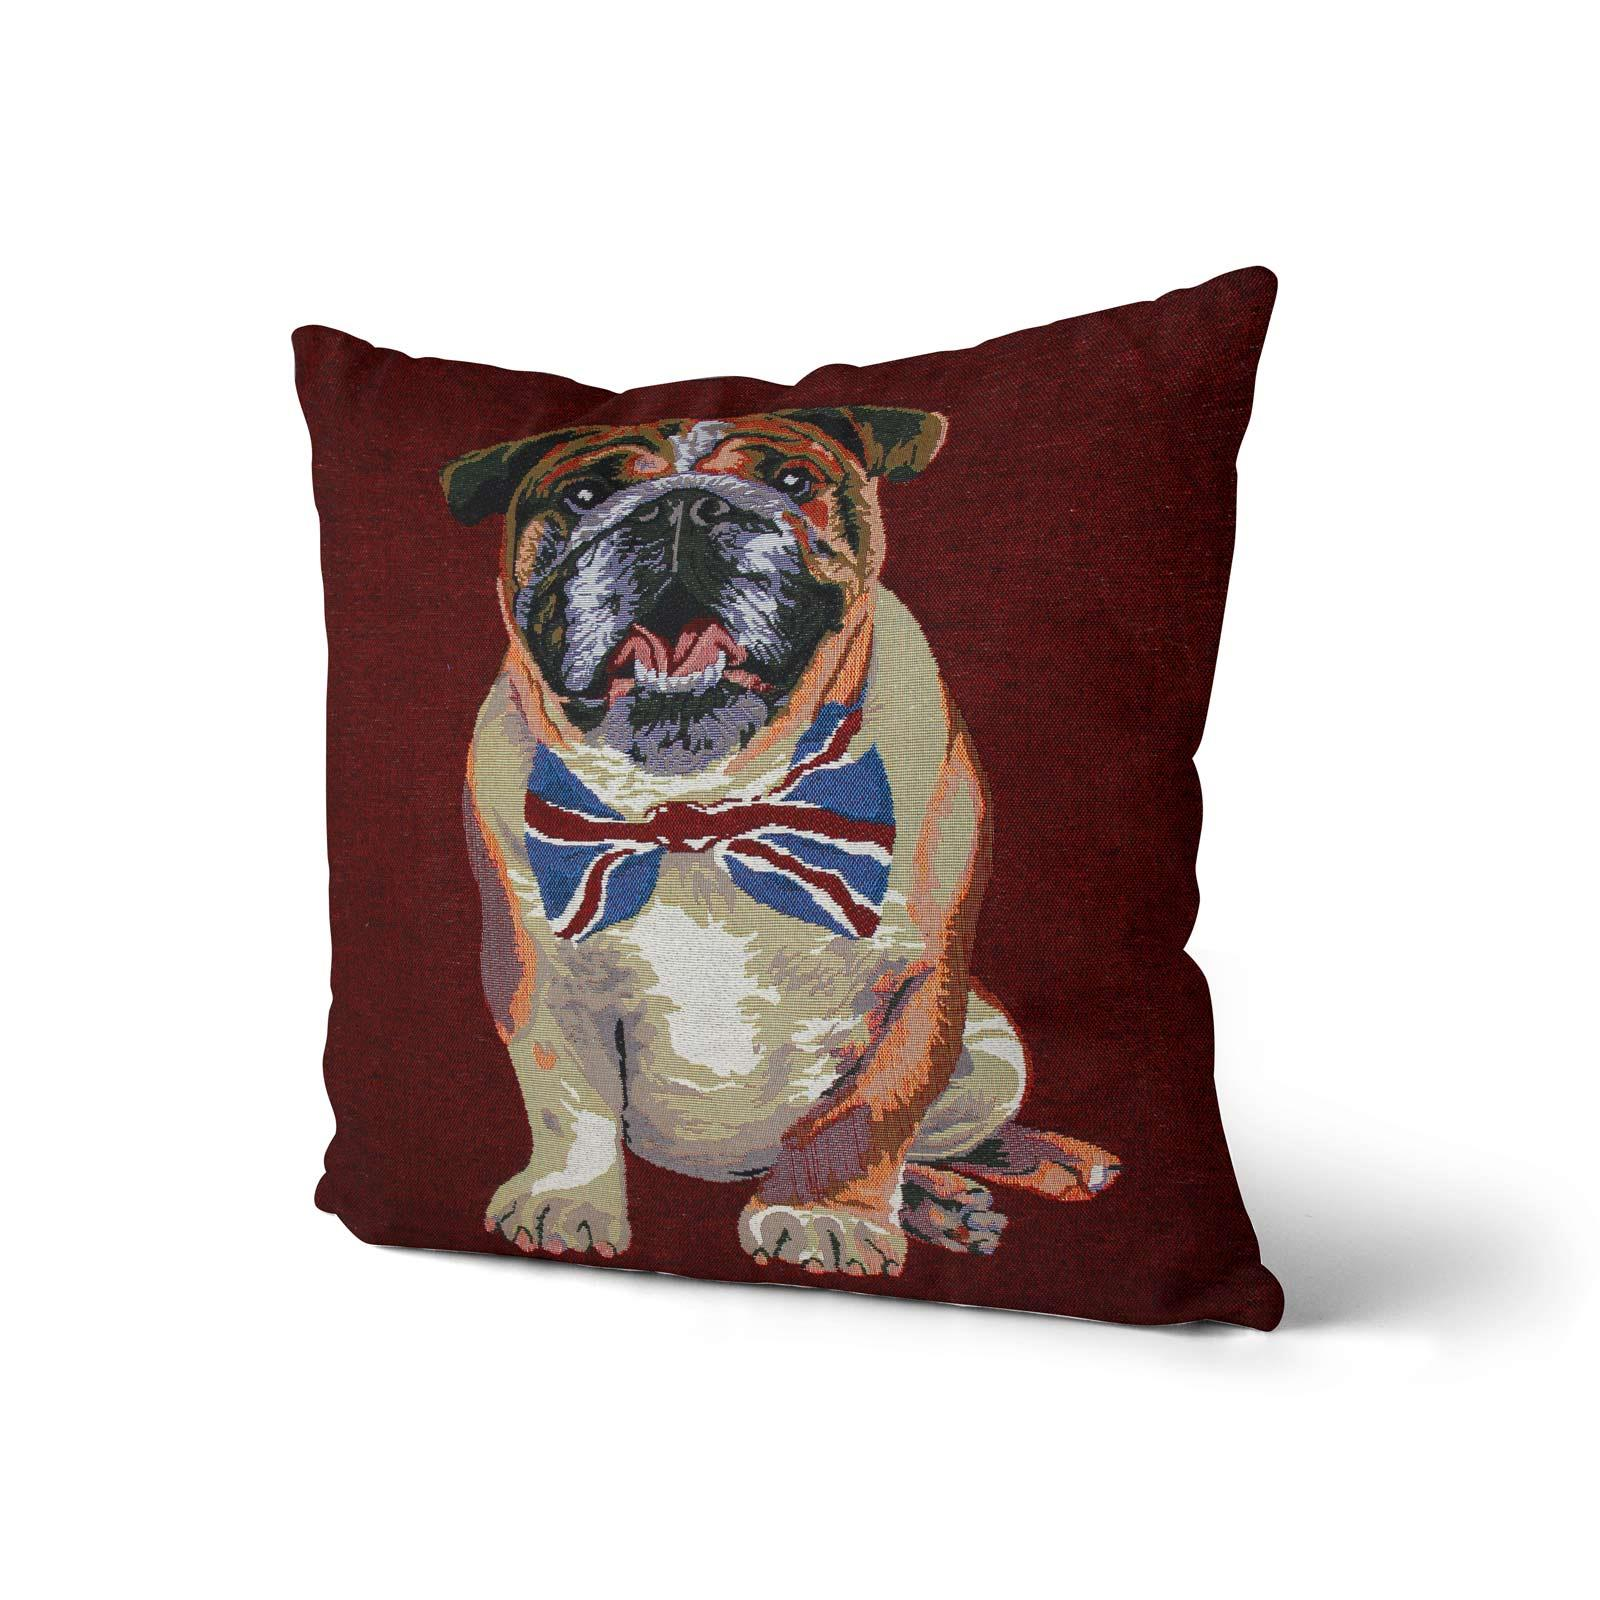 Tapestry-Cushion-Covers-Vintage-Pillow-Cover-Collection-18-034-45cm-Filled-Cushions thumbnail 241